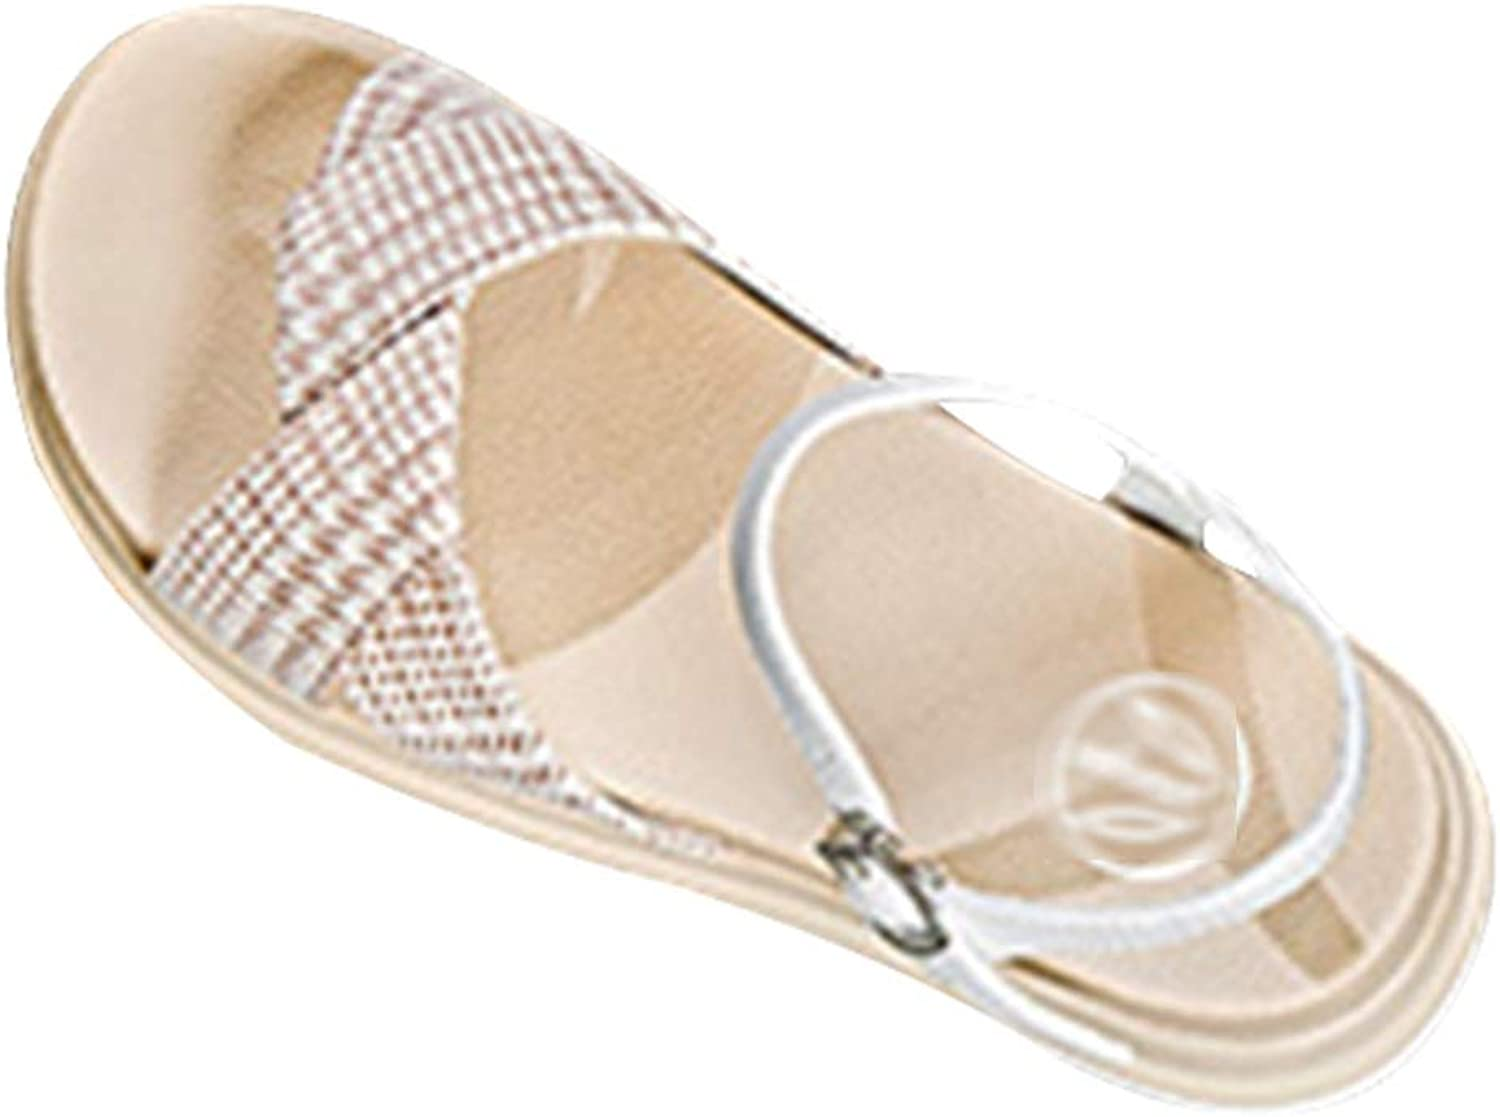 Plaid Sandals Muffin Platform shoes Fashion Wild Roman shoes Wild Beach Sandals Wedge Summer shoes Mid Heel Sandals for Women Dress shoes, Increased, Thin (color   Beige, Size   39 US8)